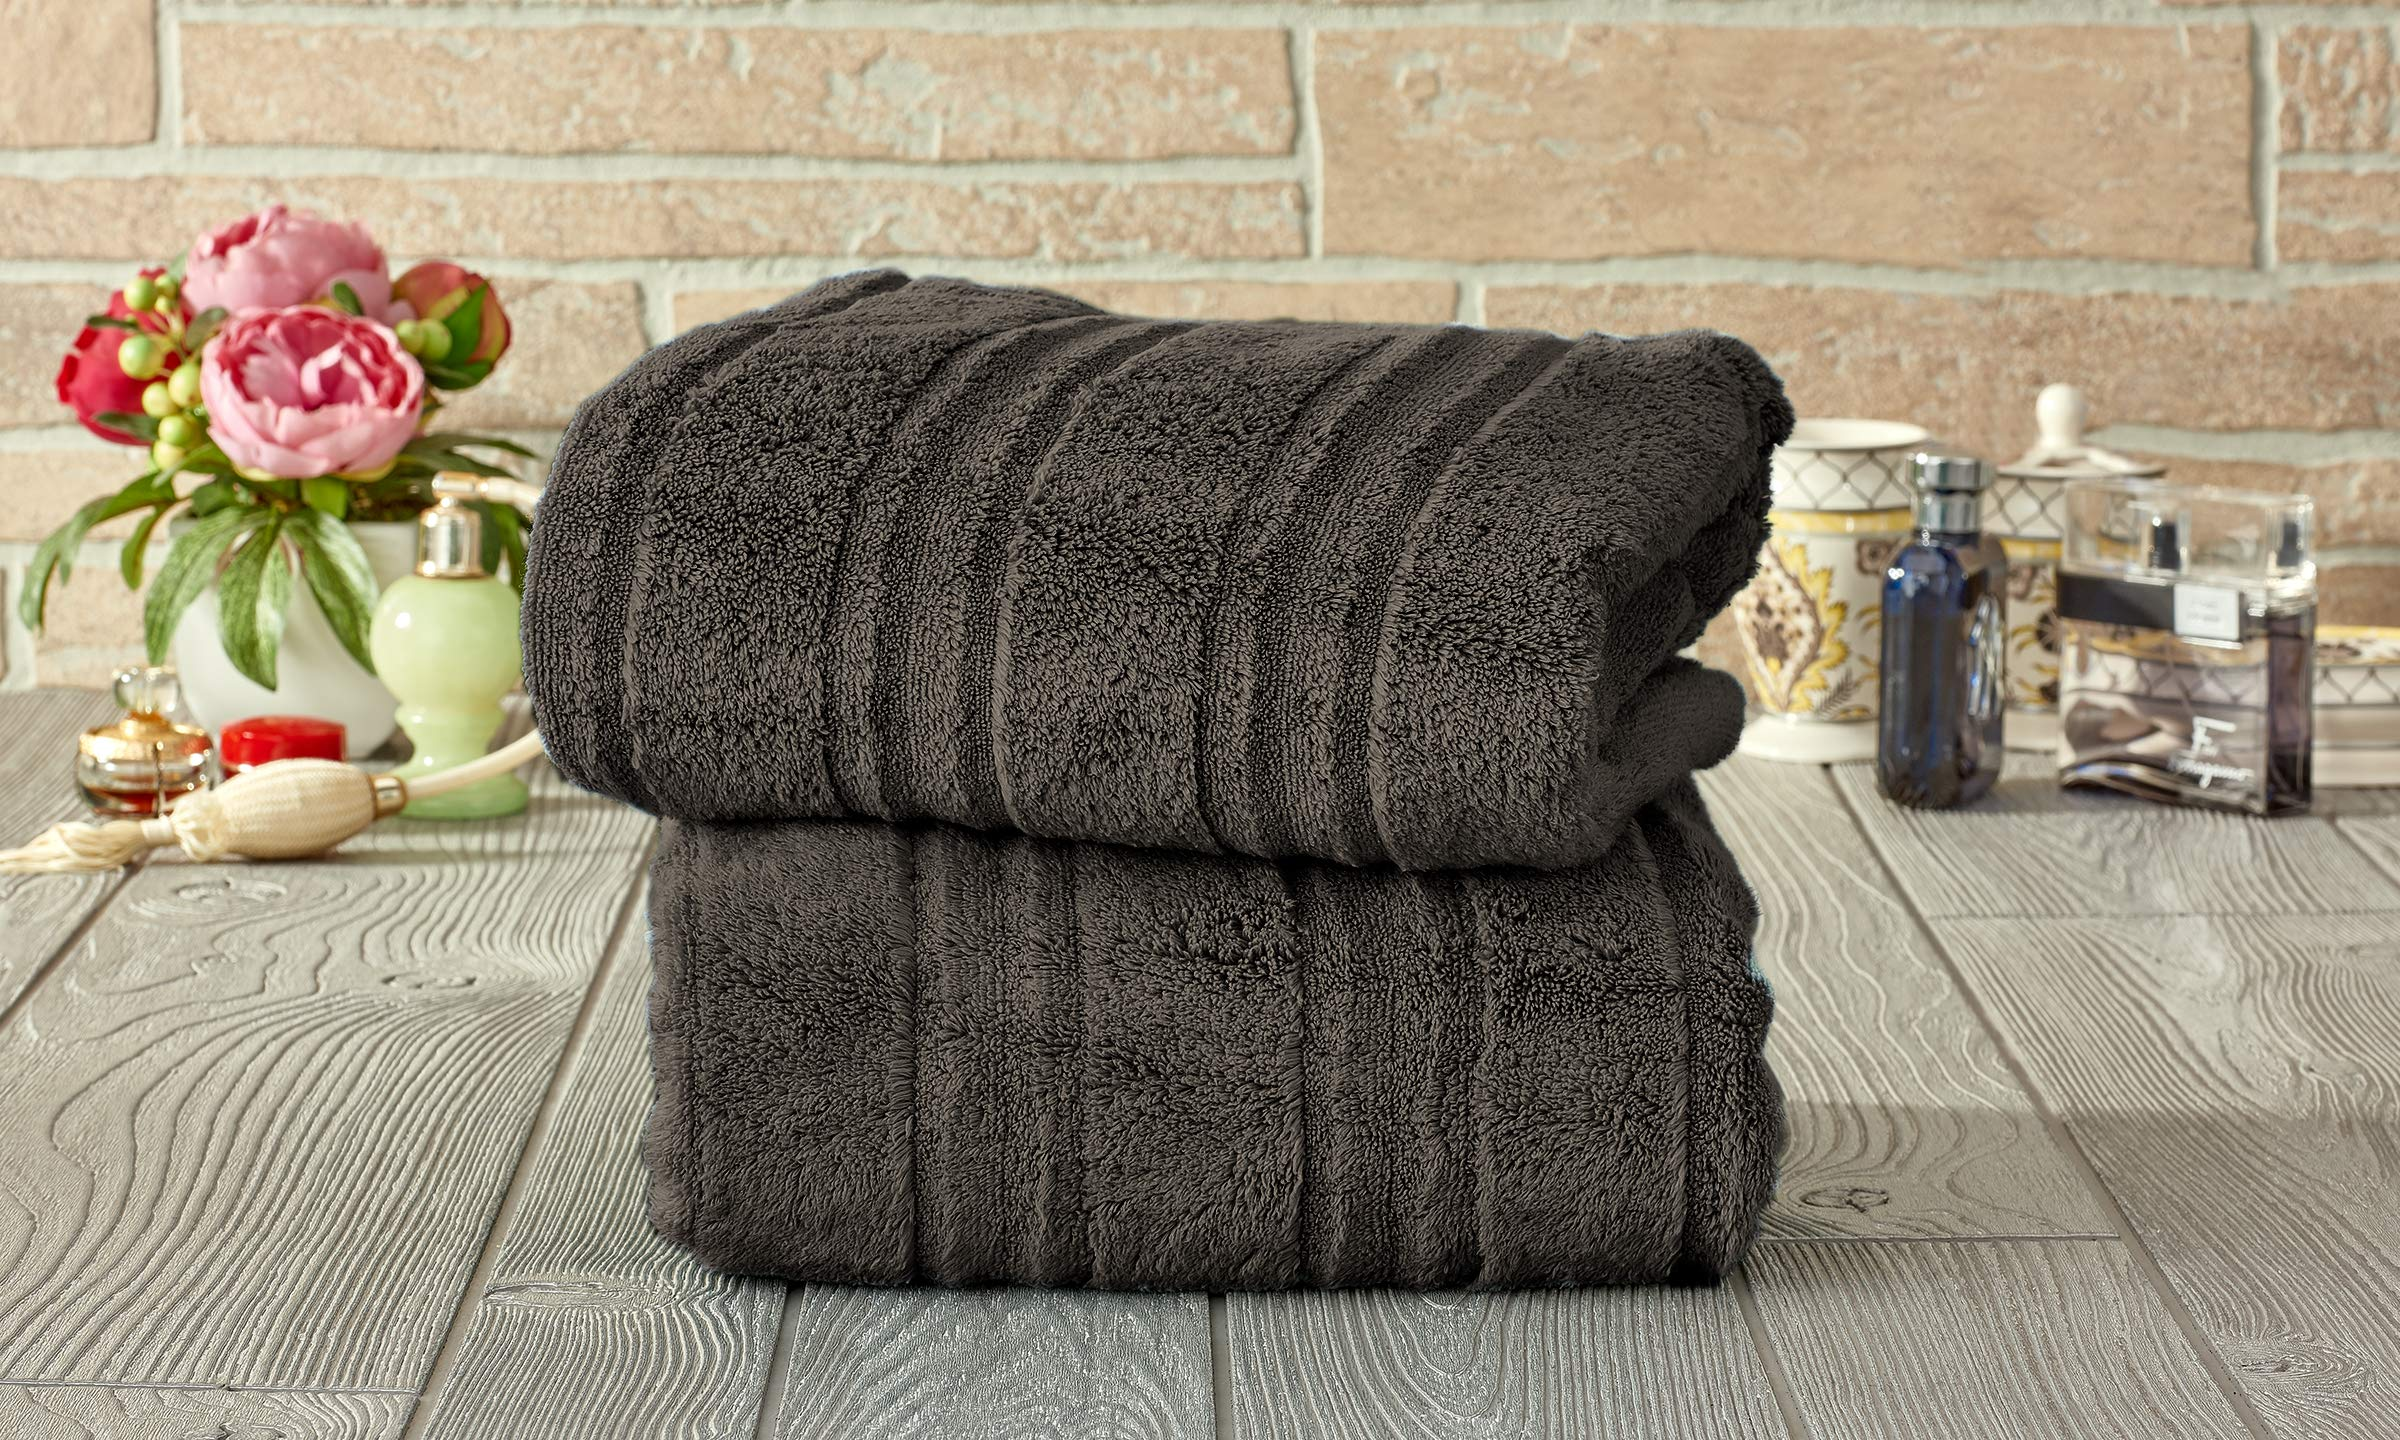 Set of 2 Microcotton 100% Cotton Zero-Twist Extra Plush Oversized Bath Towels - Fade-Resistant Egyptian Cotton Hotel Quality, Luxury Super Soft Highly Absorbent Bathroom Towel 30'' x 60'' (Charcoal)